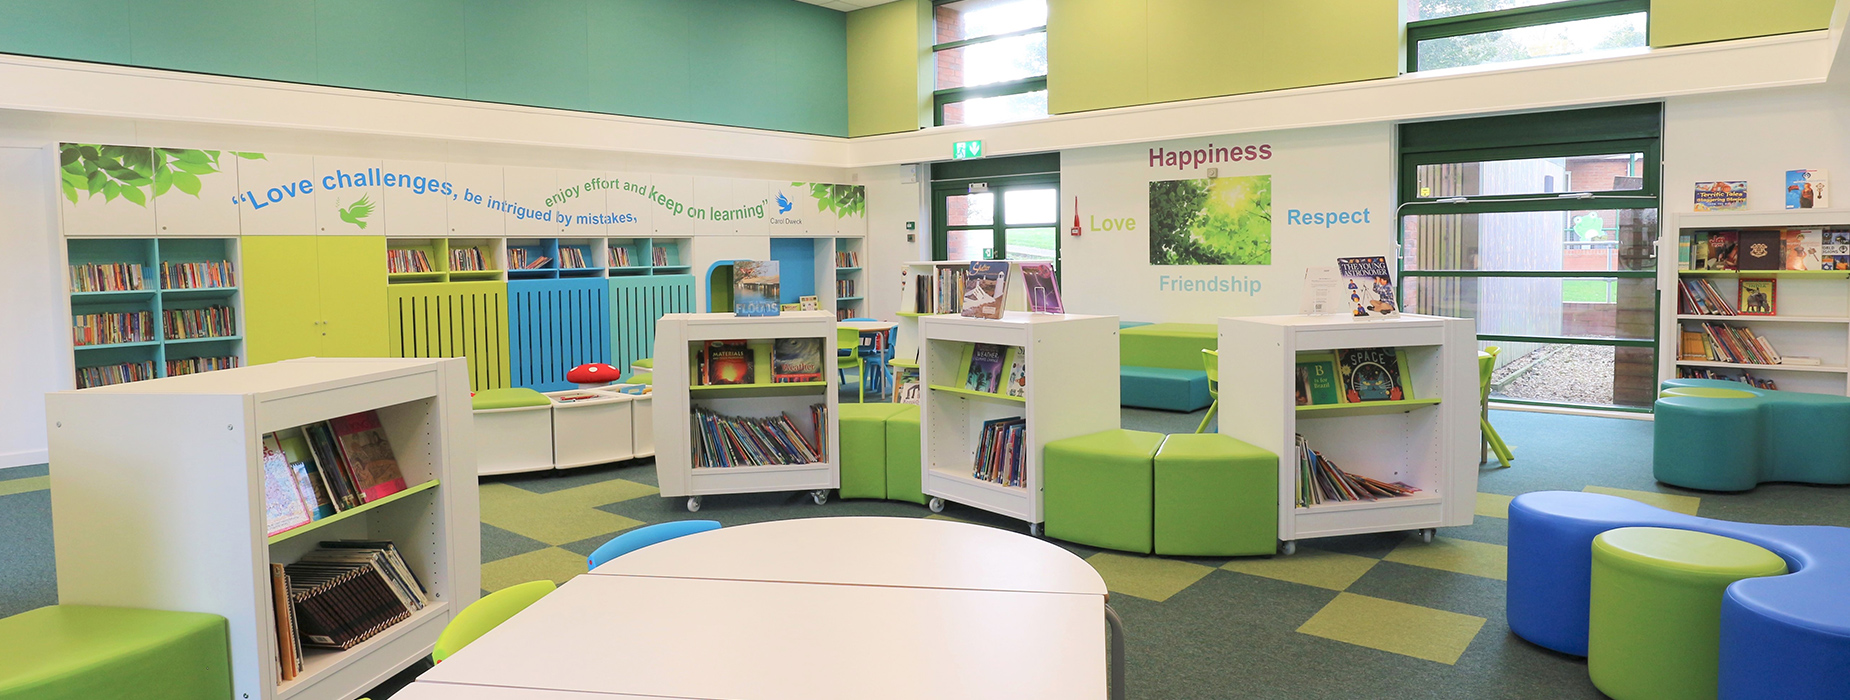 An image for Primary Schools libraries